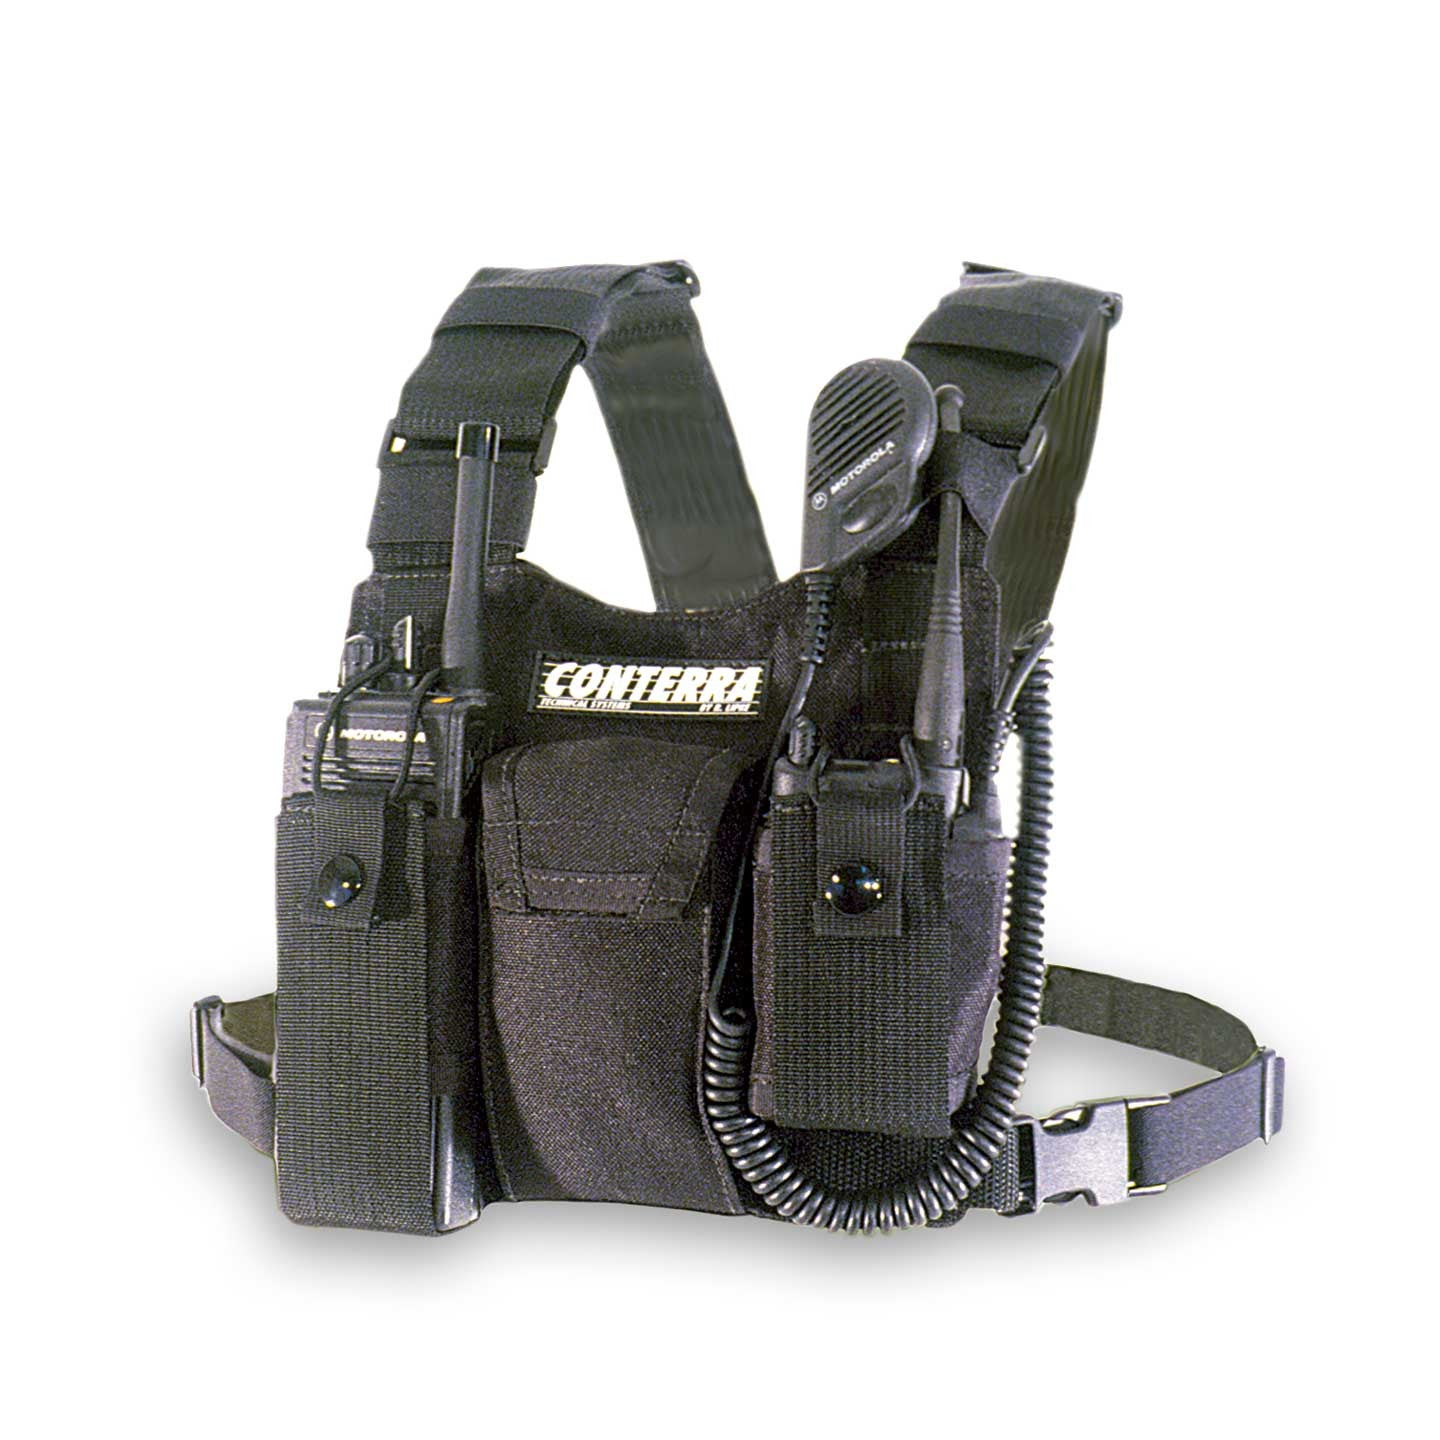 doubleradioharness?v=1424473790 double adjusta pro radio chest harness conterra inc radio harness at aneh.co